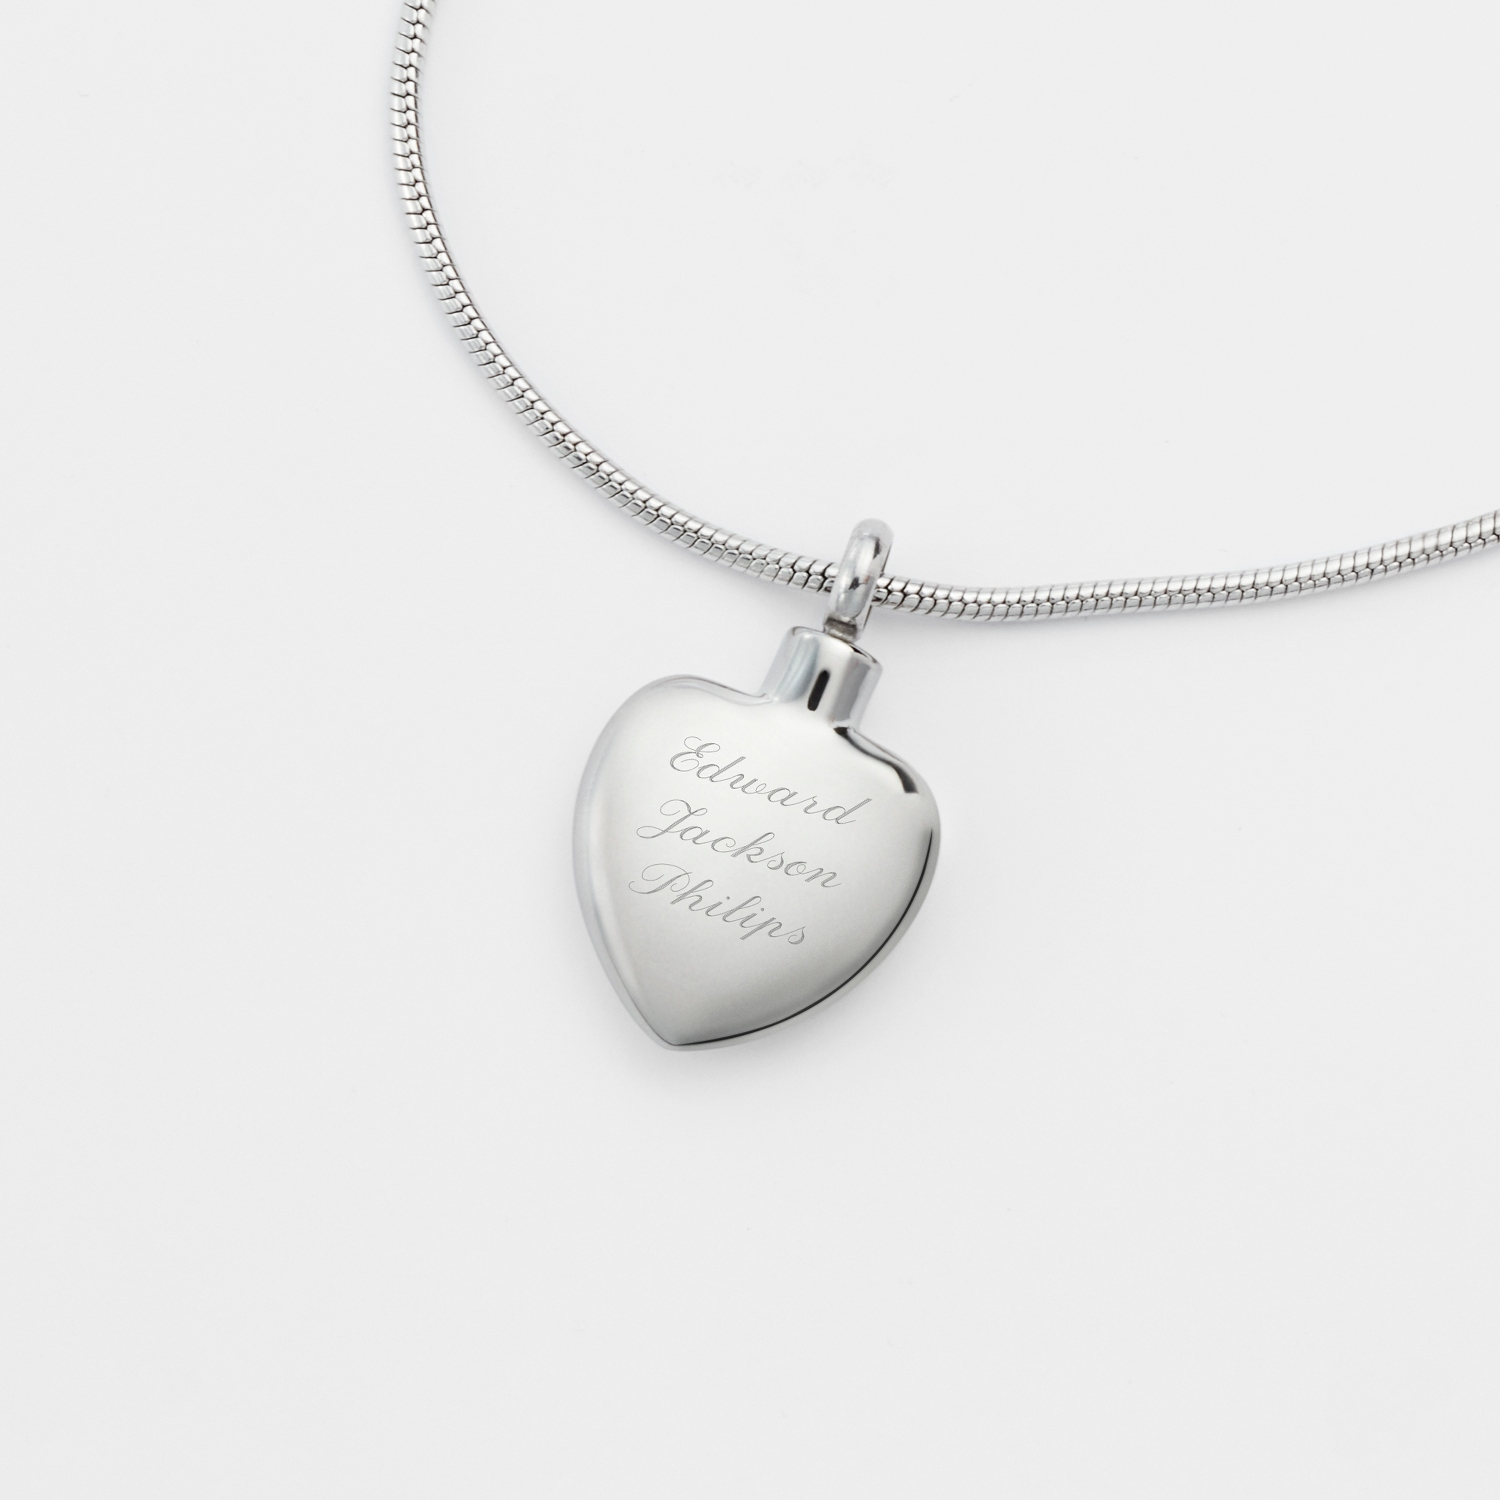 amazon ash co heart dp keepsake jewellery uk pendant memorial cremation necklace grandad urn